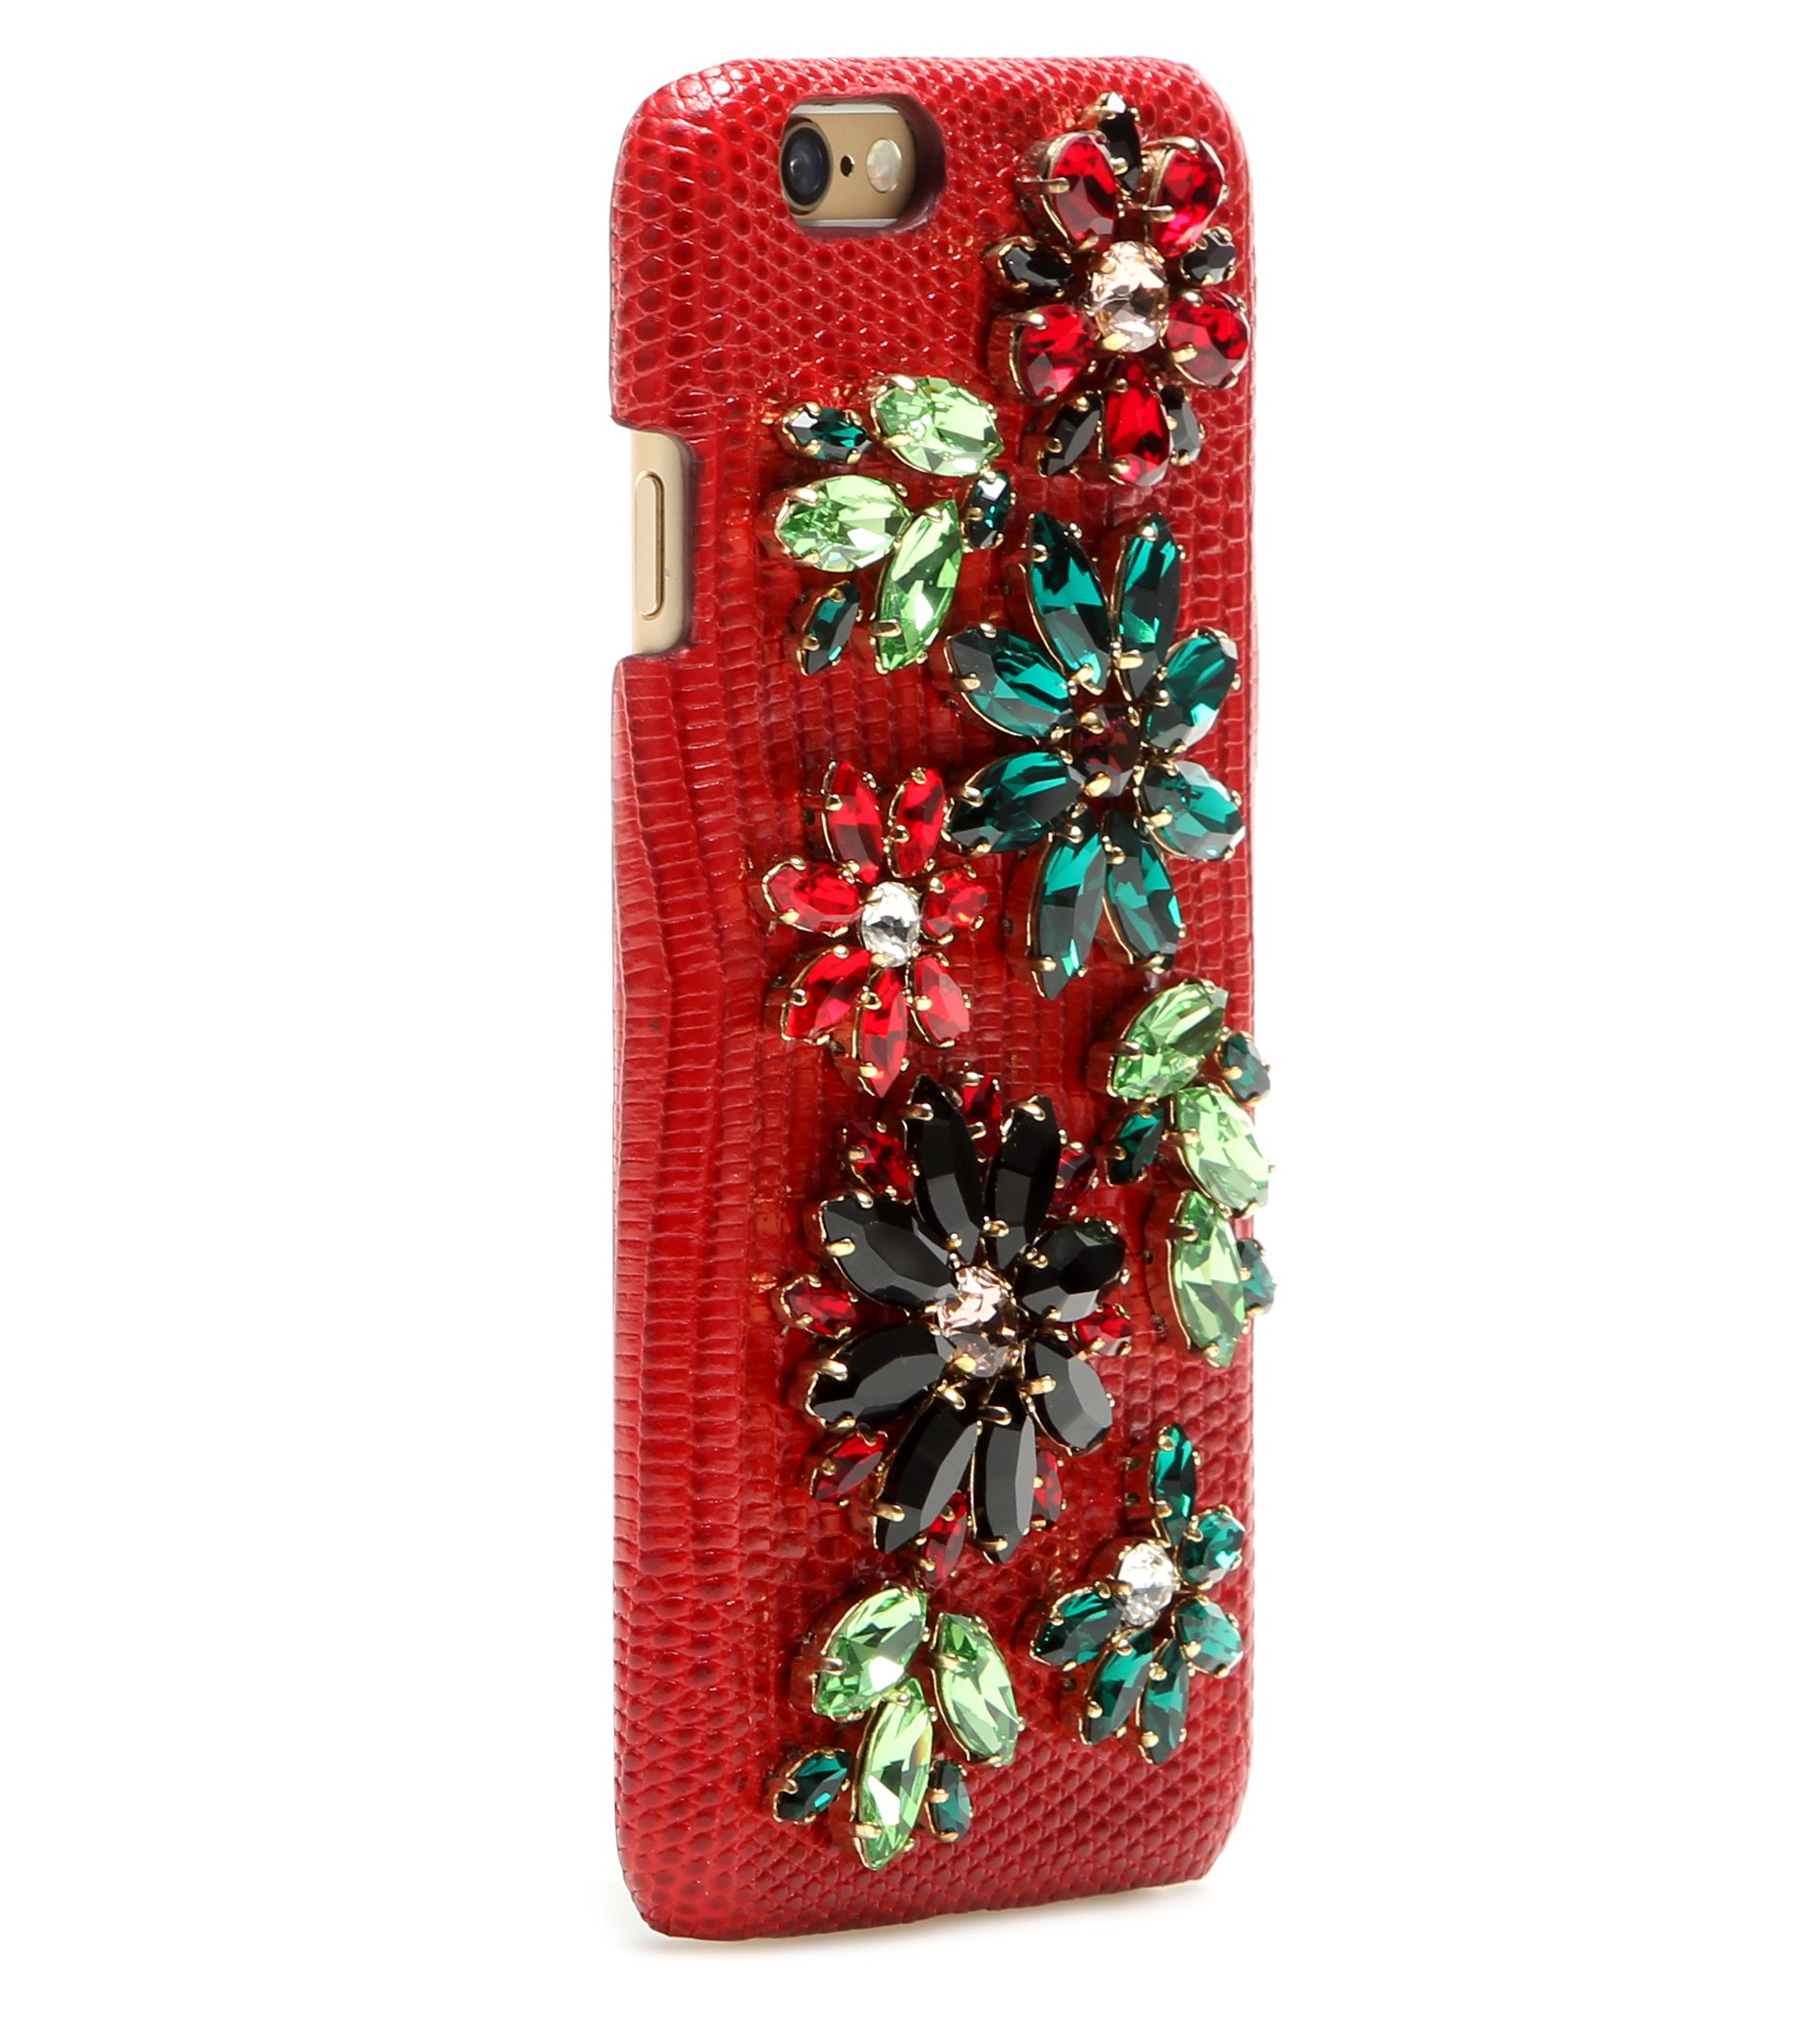 Embellished leather iPhone 6 case Dolce & Gabbana 3wfNM